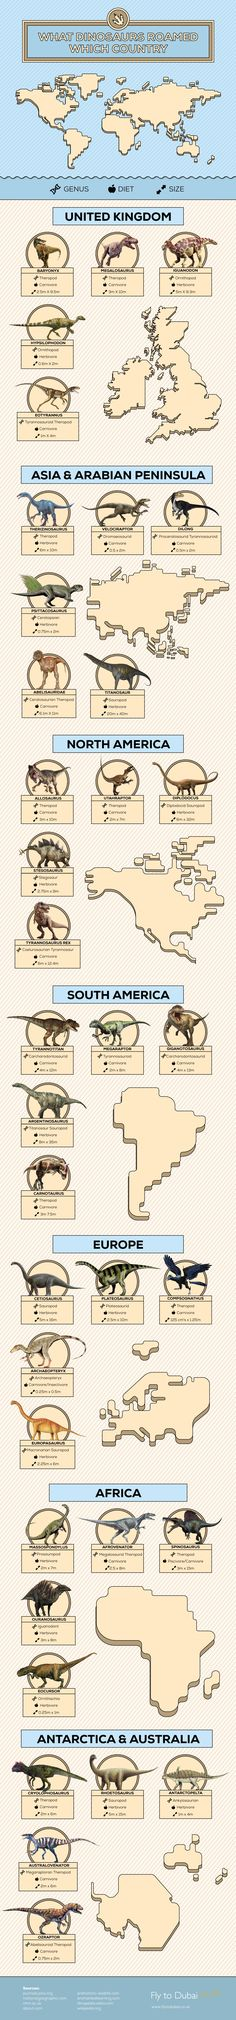 Have you ever wondered what dinosaurs roamed your backyard or fought for survival at your local supermarket?